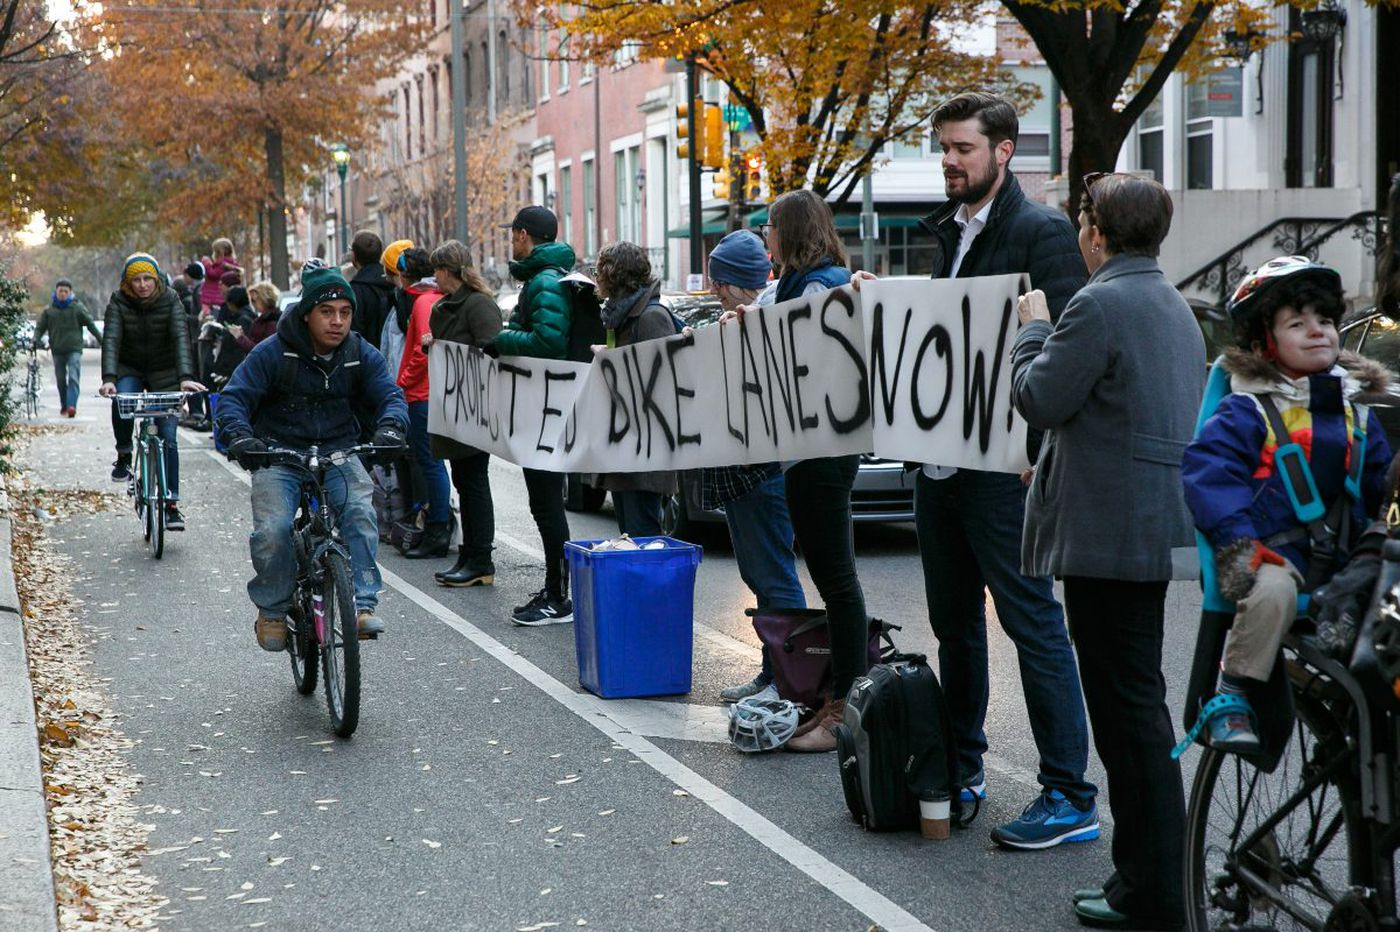 What Philly should do about bike-lane safety   Readers respond